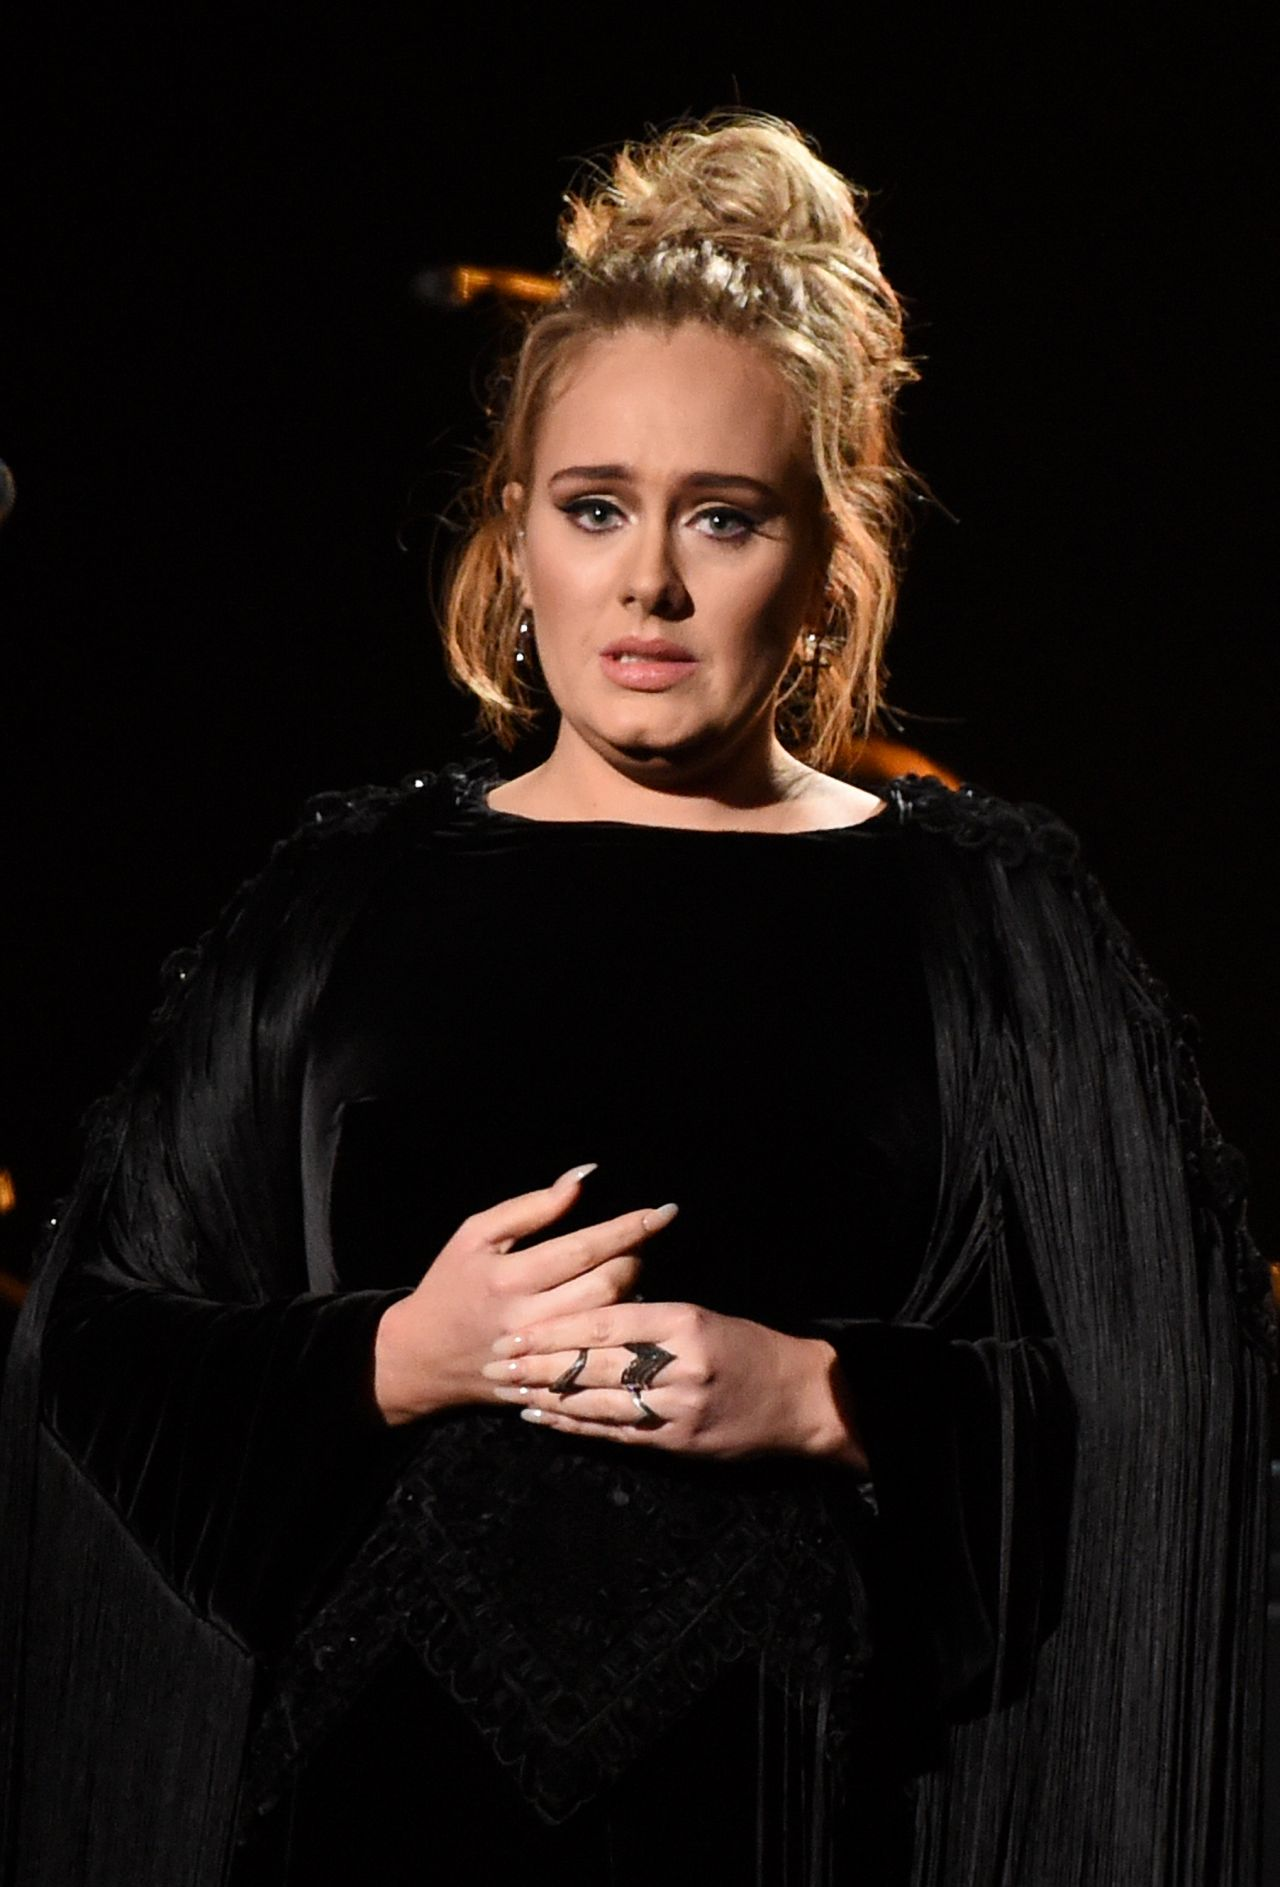 Adele Performs at 59th Annual GRAMMY Awards in Los Angeles 02/12/2017